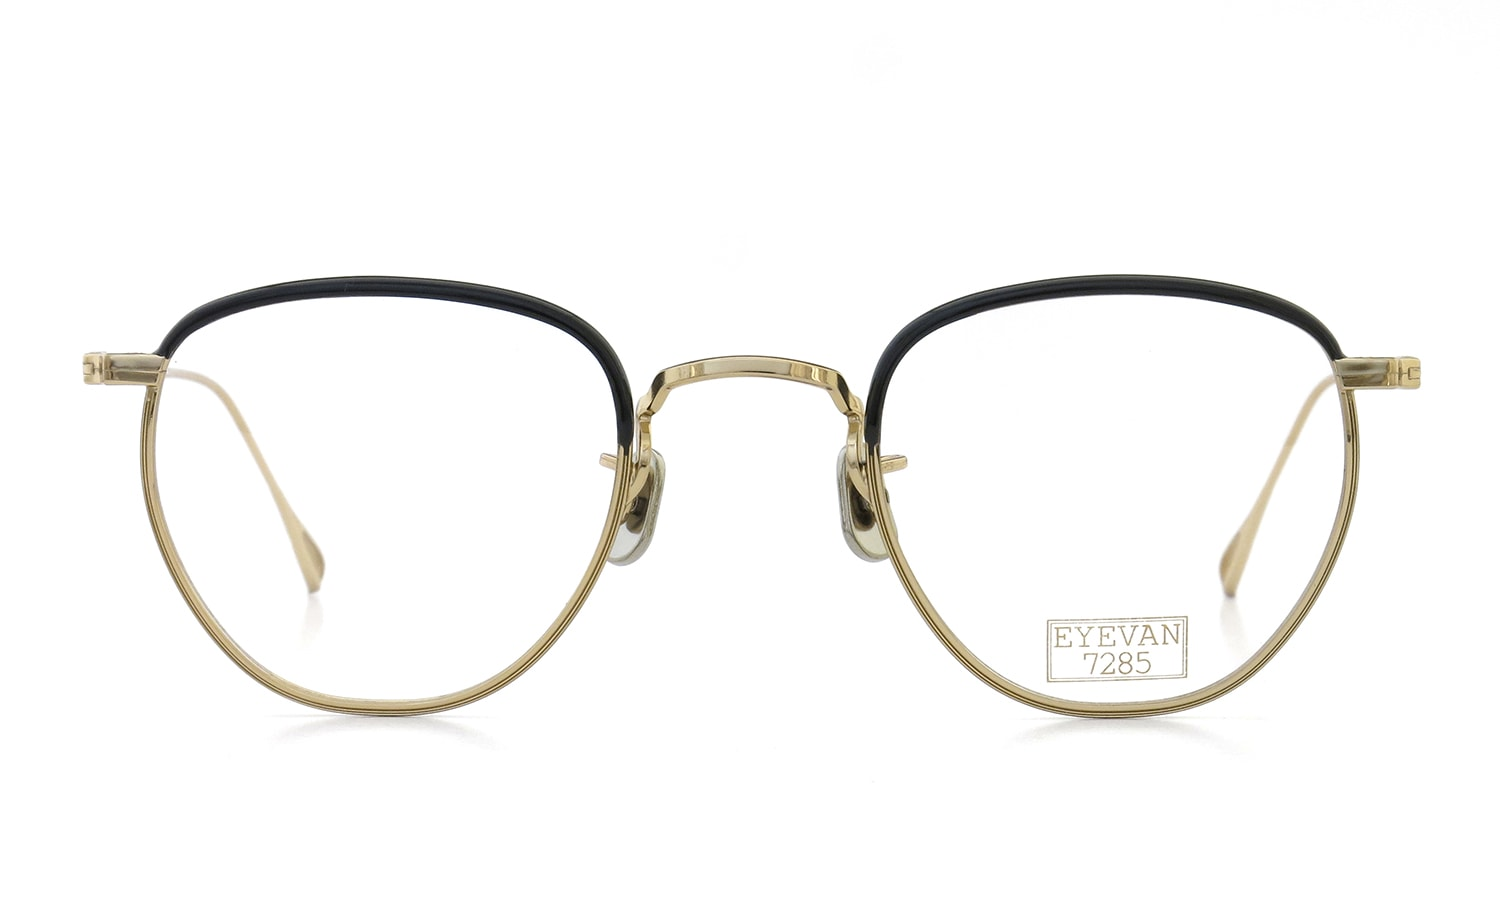 EYEVAN 7285 549 9007 BLACK/EYEVAN GOLD 2